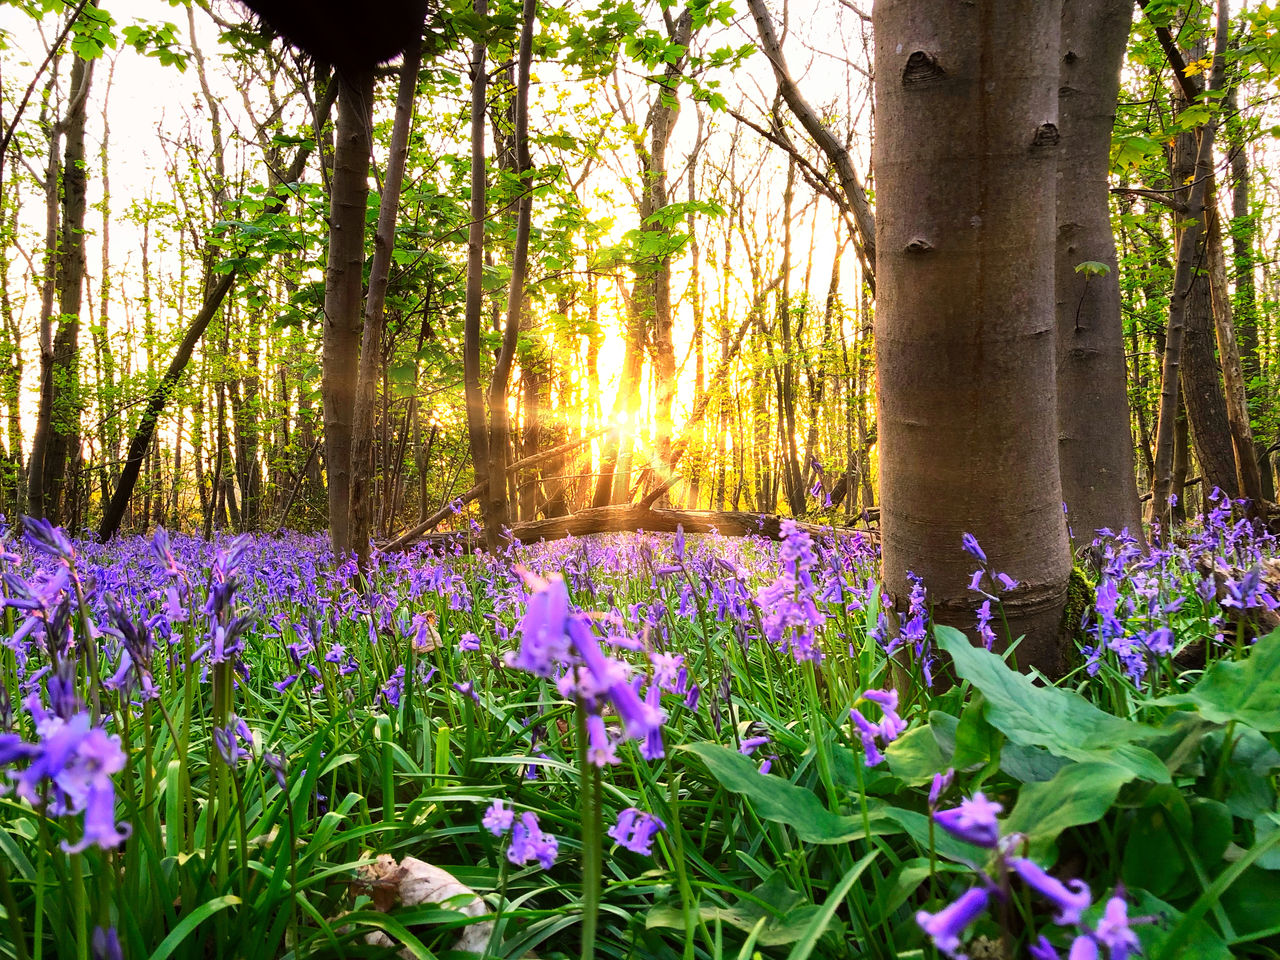 plant, flower, flowering plant, beauty in nature, land, tree, growth, tranquility, nature, tranquil scene, freshness, sunlight, forest, purple, trunk, tree trunk, no people, green color, scenics - nature, vulnerability, outdoors, springtime, flower head, flowerbed